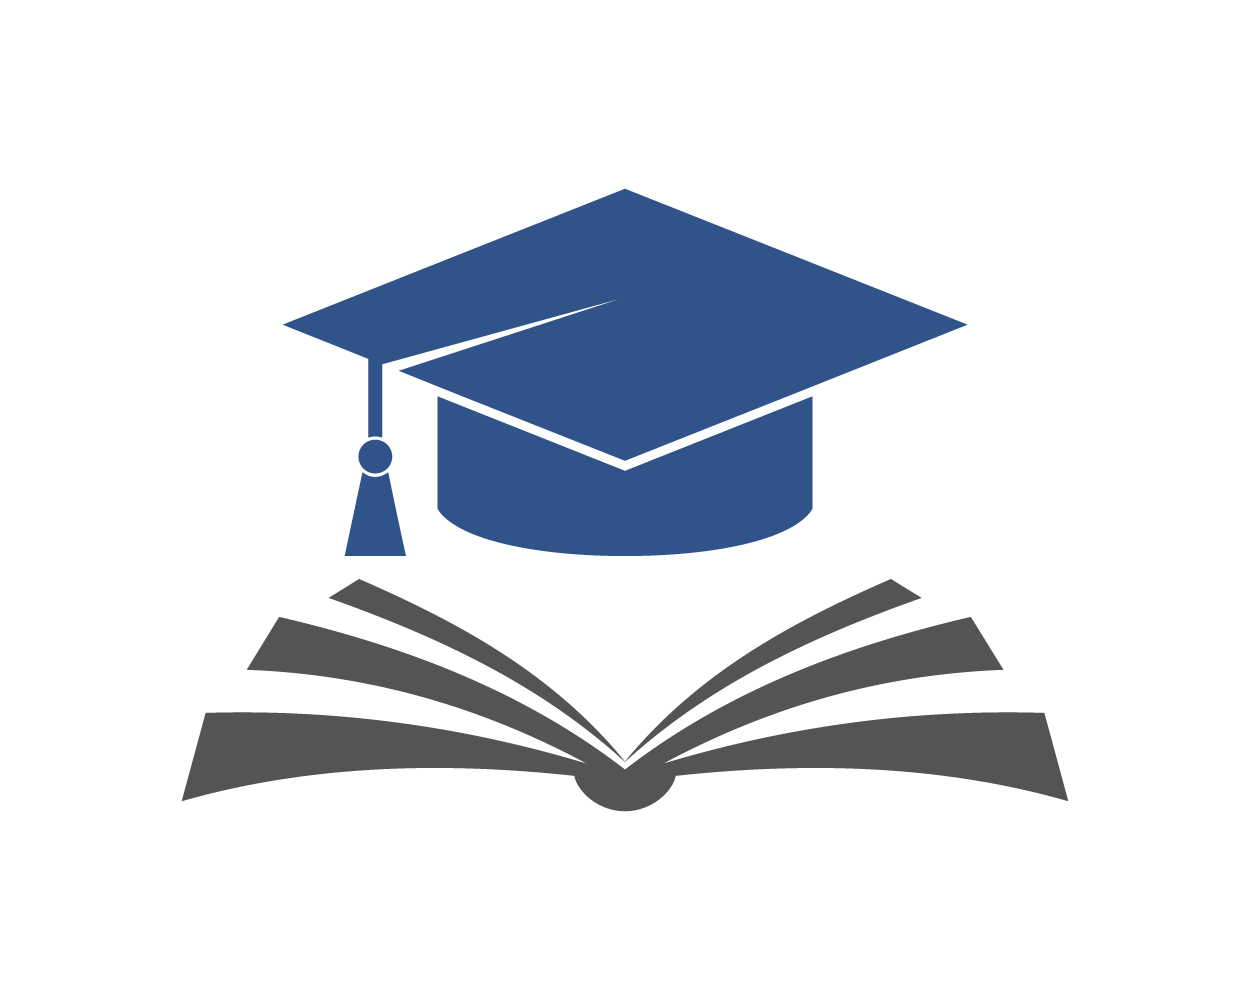 kisspng-logo-rare-book-school-graduation-ceremony-rare-boo-document-management-software-document-management-s-5d4b73aaf11933.4532882415652258989876.png (28 KB)